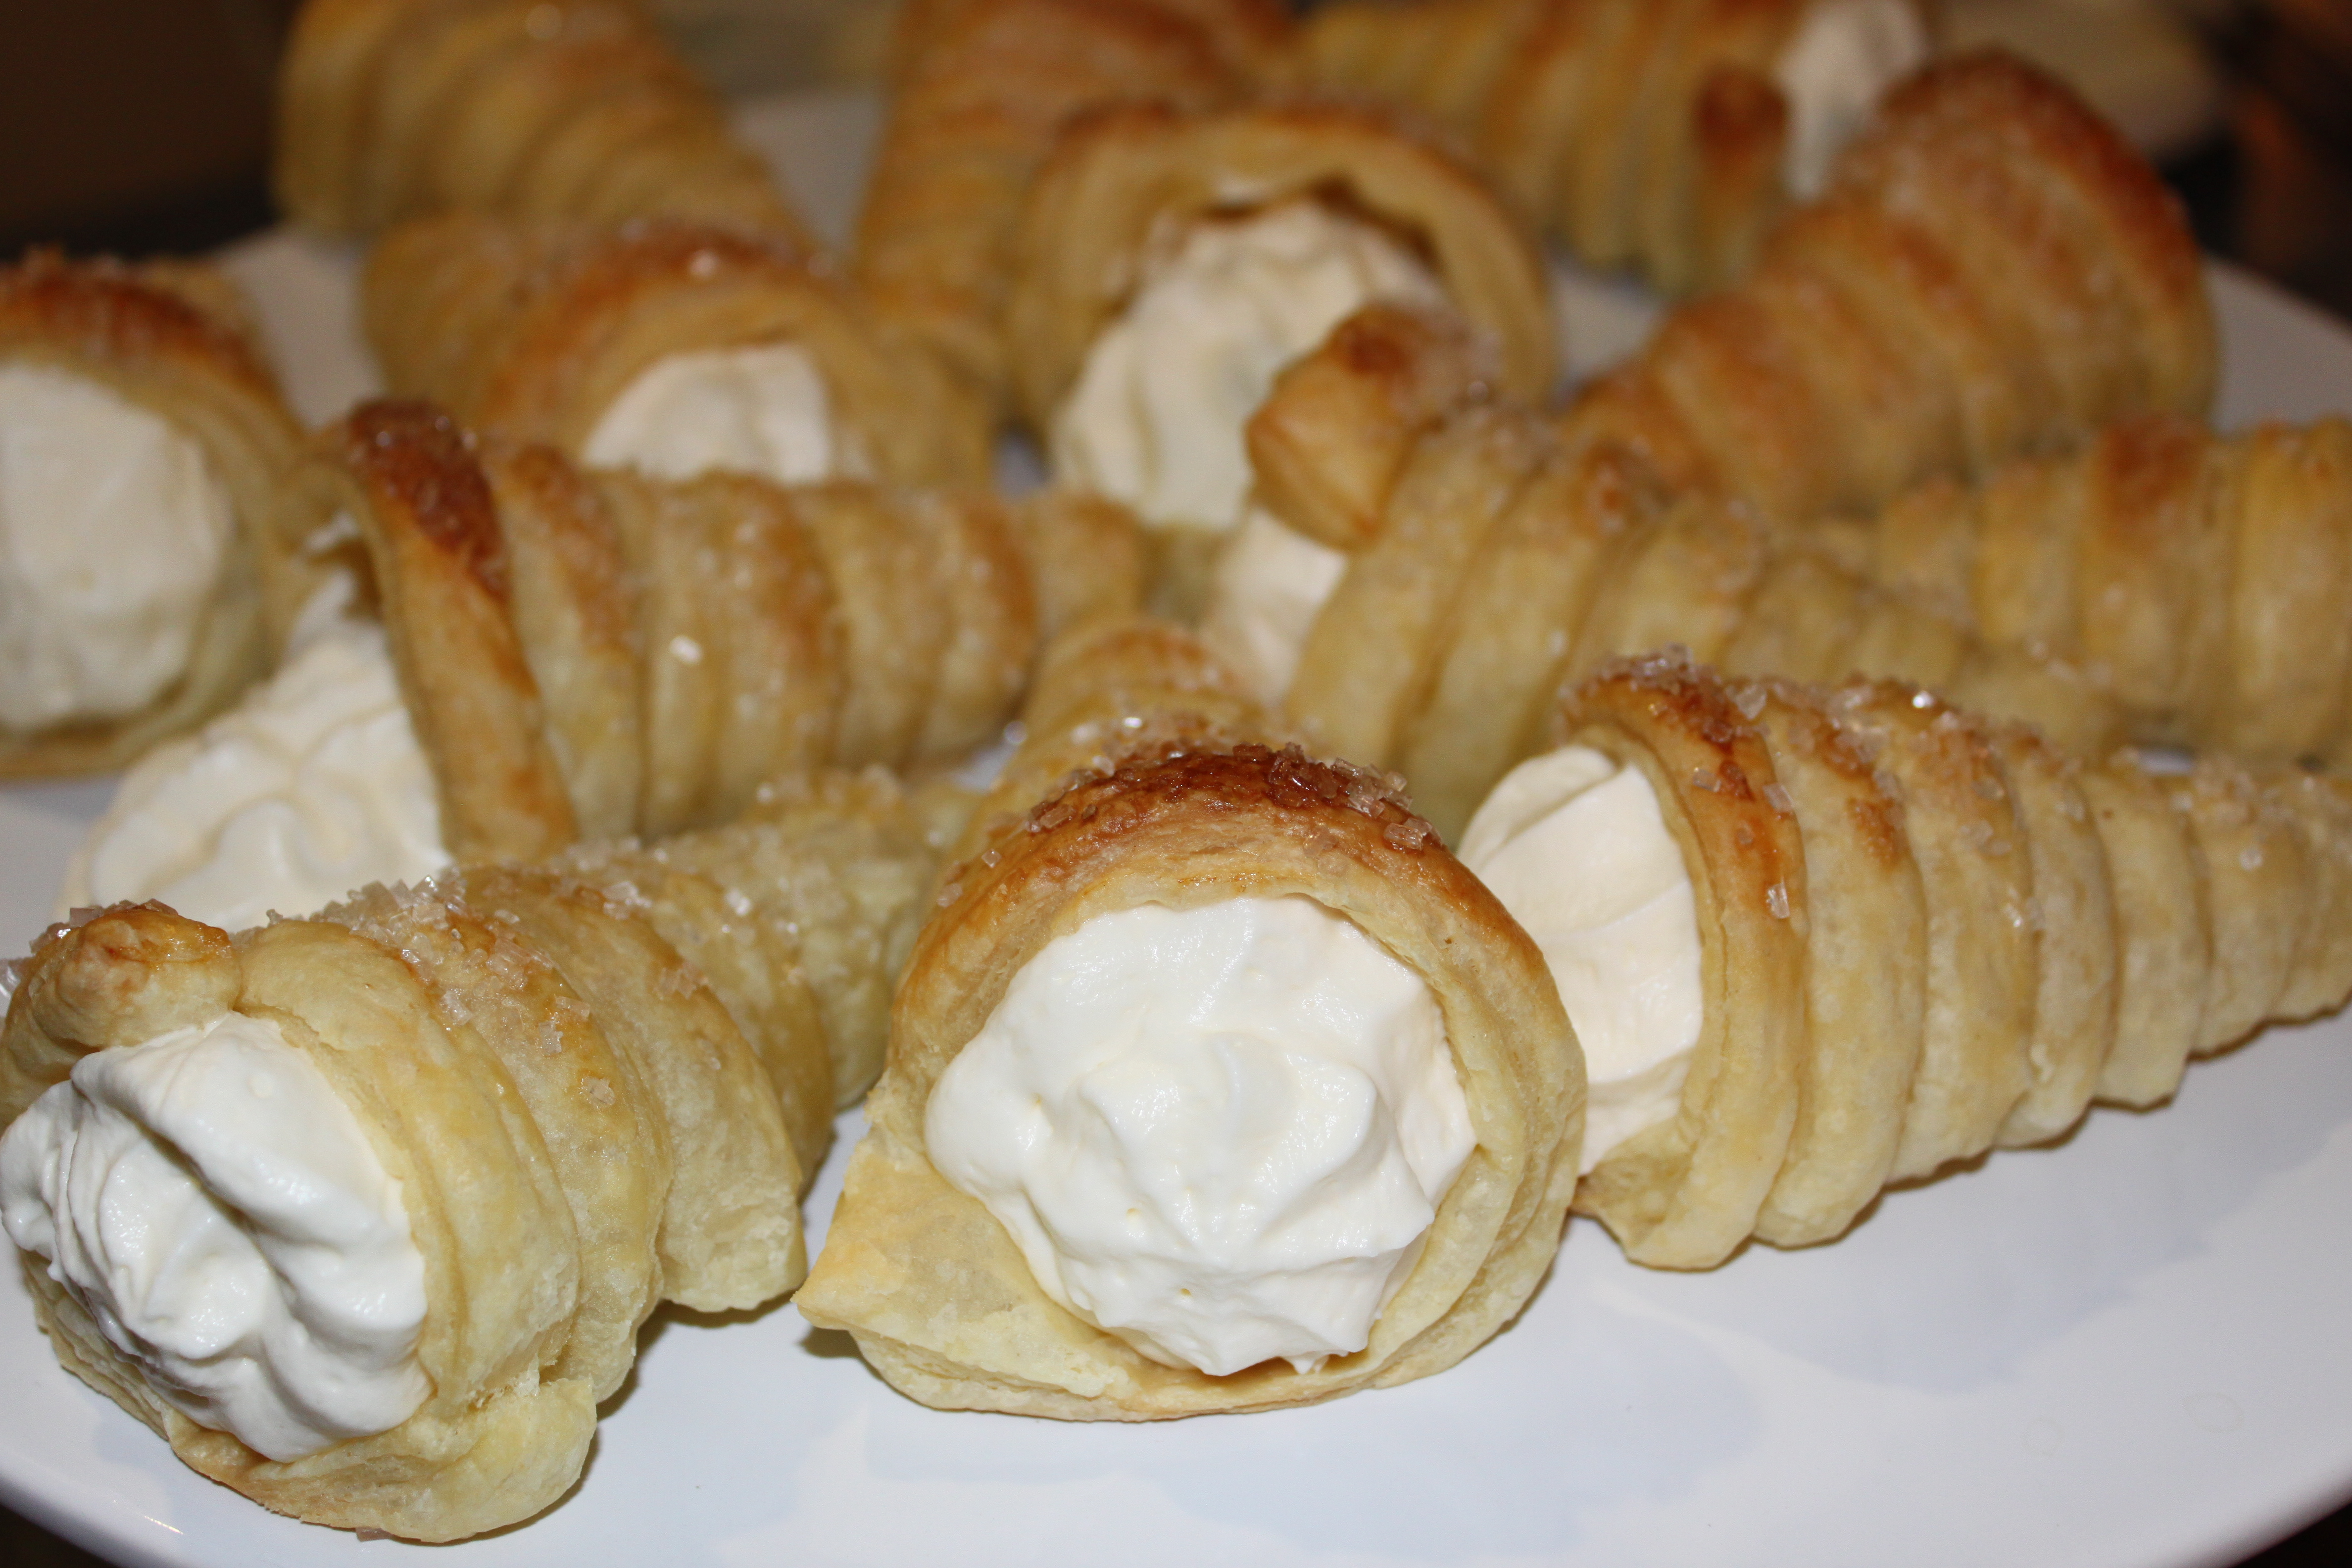 White chocolate mousse pastry horns pennys food blog second treat for book group tonight these were awesome a pampered chef recipe from their simply sweet cookbook which is one of my favorite cookbooks forumfinder Gallery